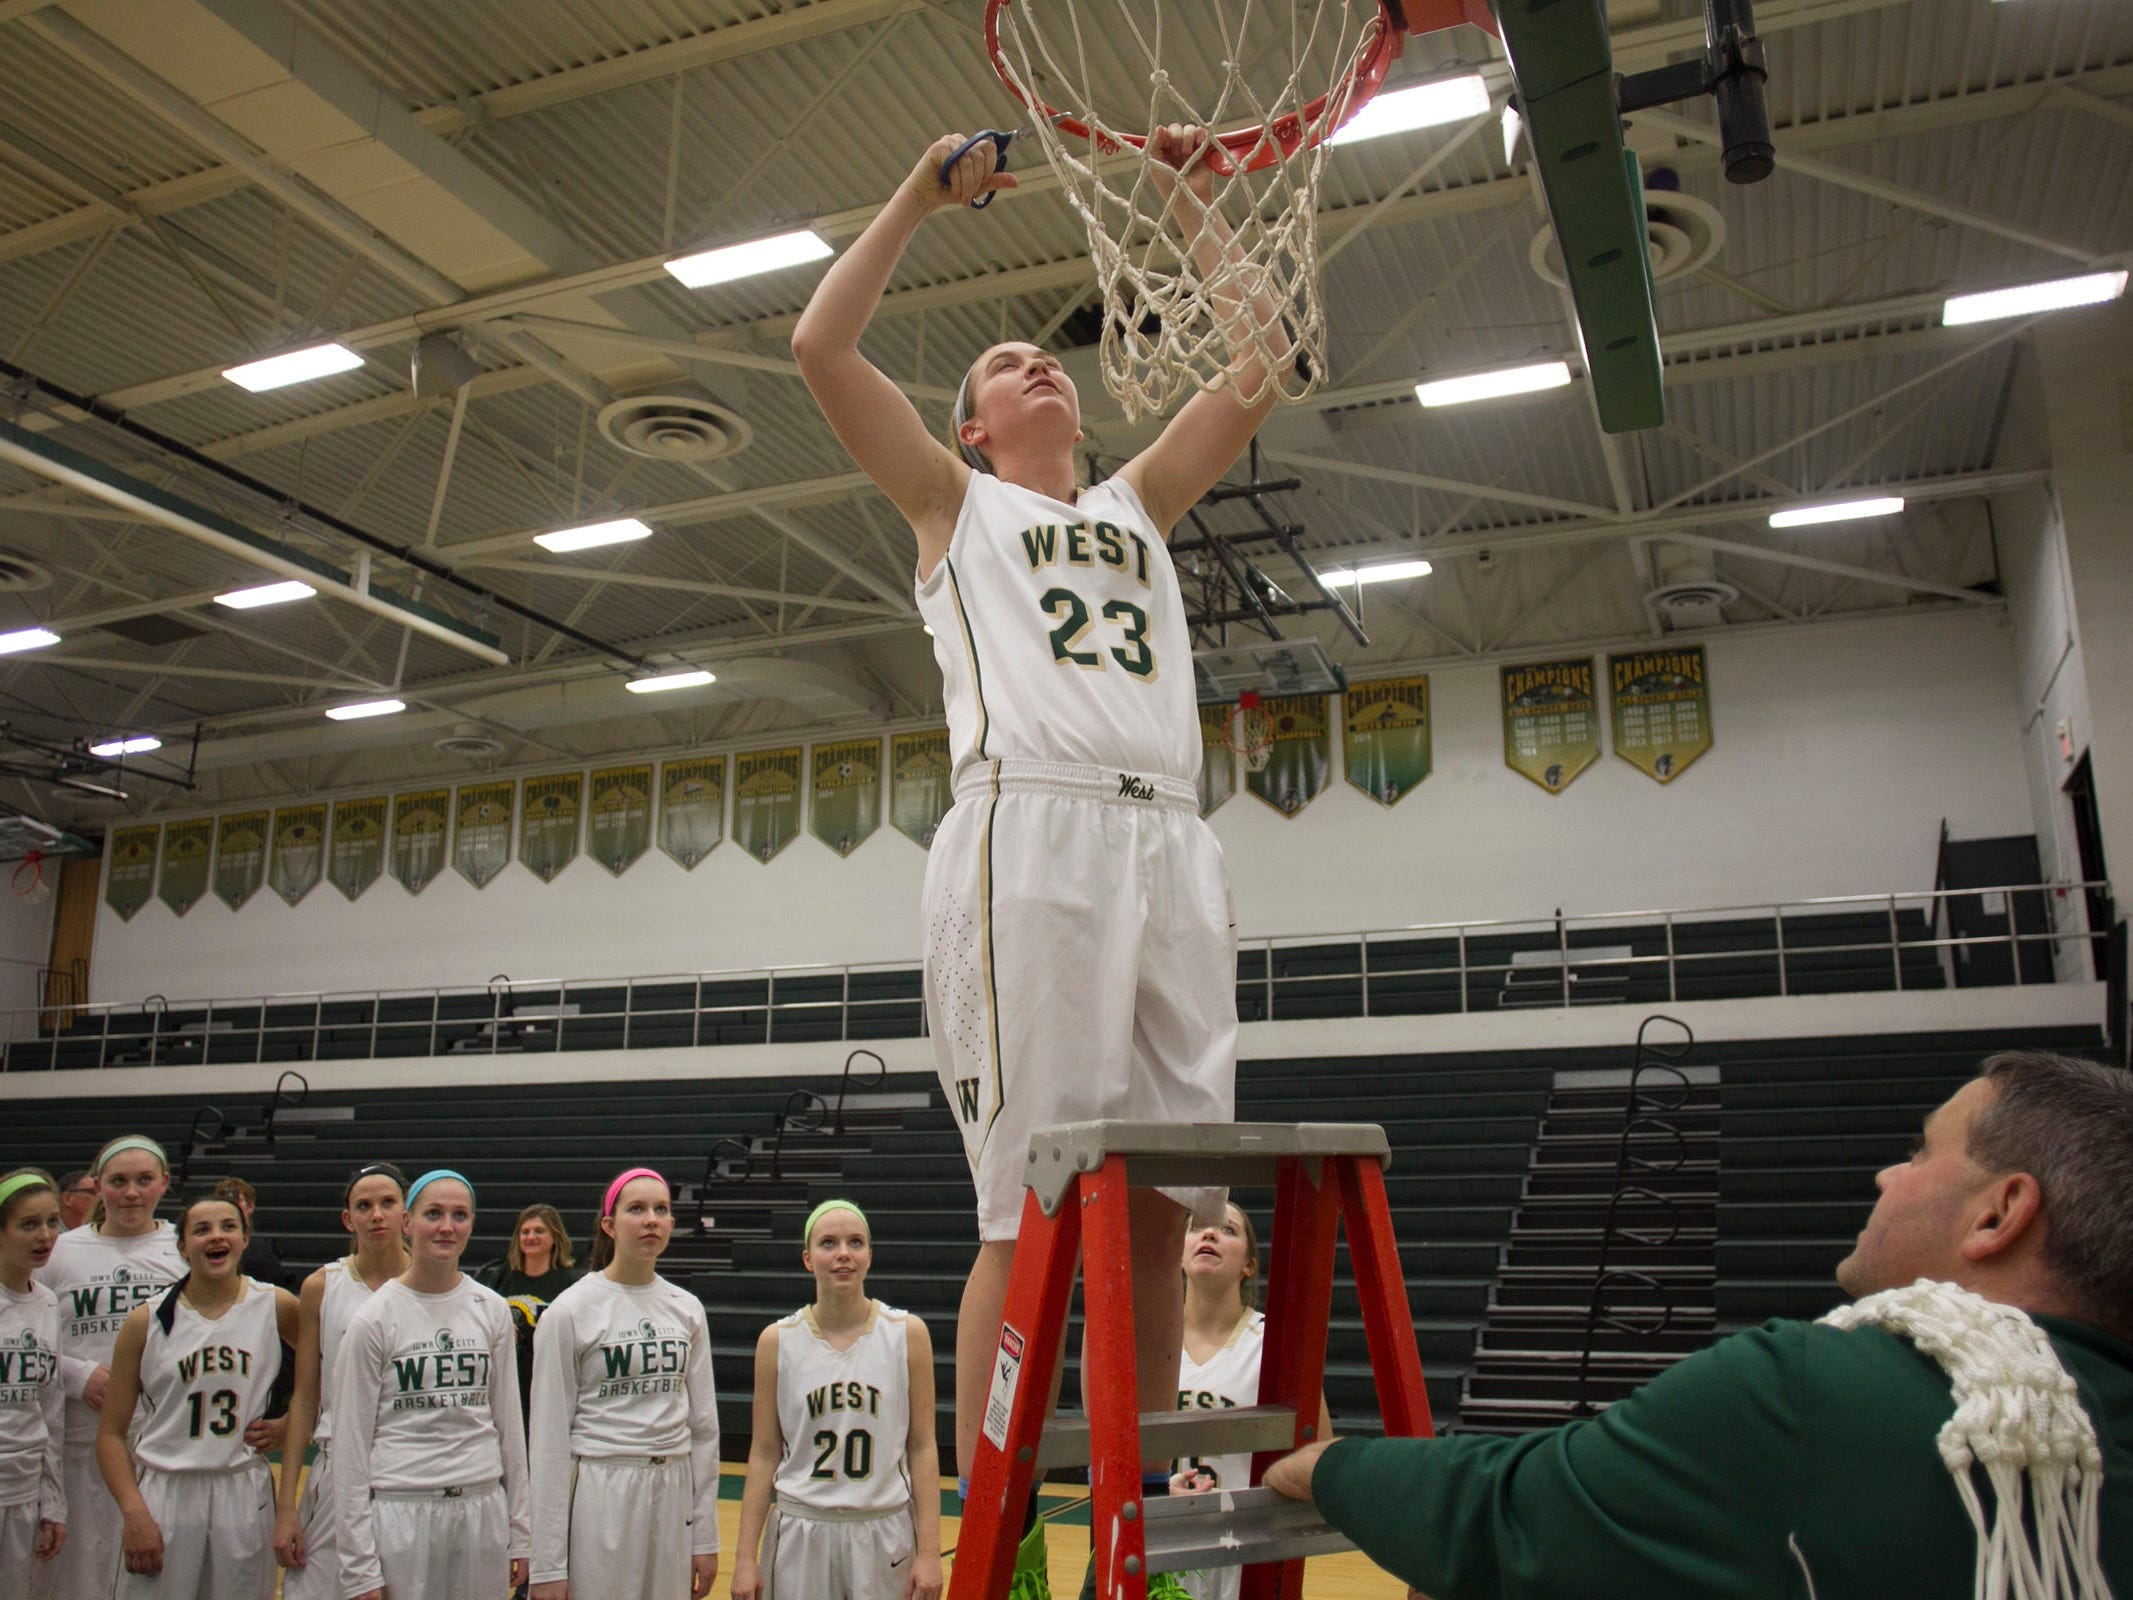 West High's Jessie Harder helps cut down the net following the Women of Troy's Class 5A regional final against Pleasant Valley on Tuesday, Feb. 24, 2015. West High won, 45-27, to advance to the state tournament. David Scrivner / Iowa City Press-Citizen